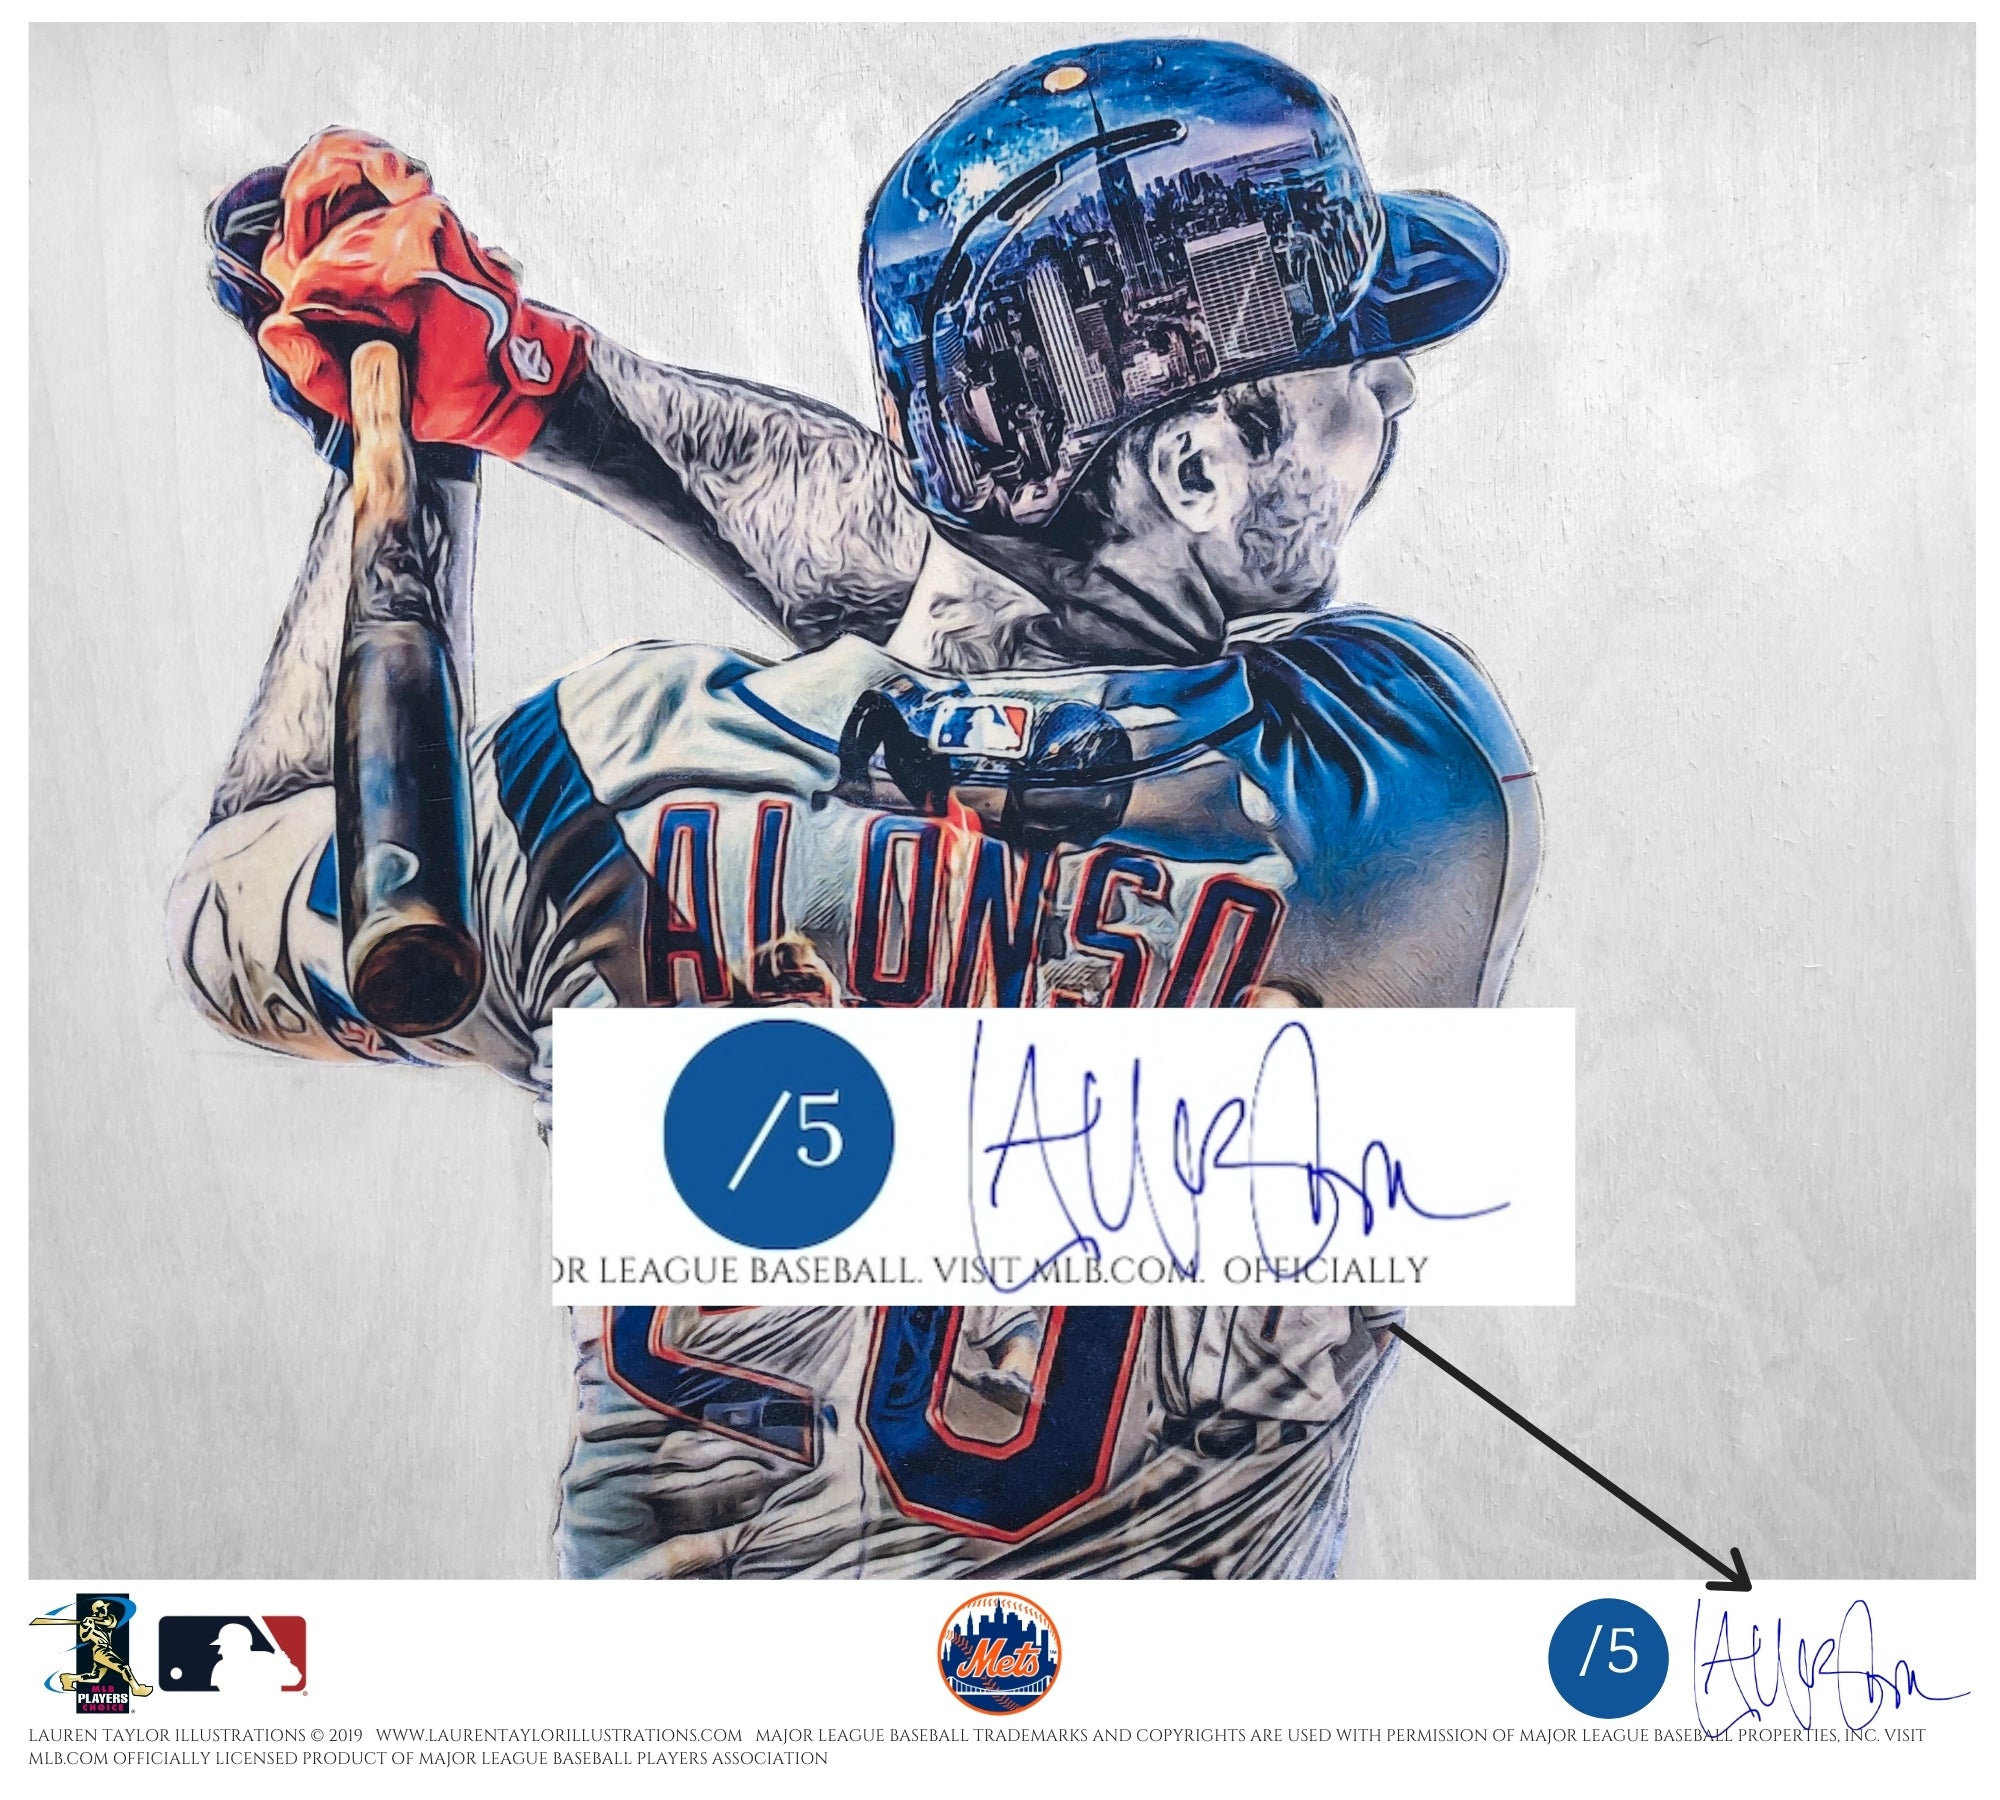 """Polar Bear"" (Pete Alonso) New York Mets - Officially Licensed MLB Print - BLUE ARTIST SIGNATURE Limited Release /5"